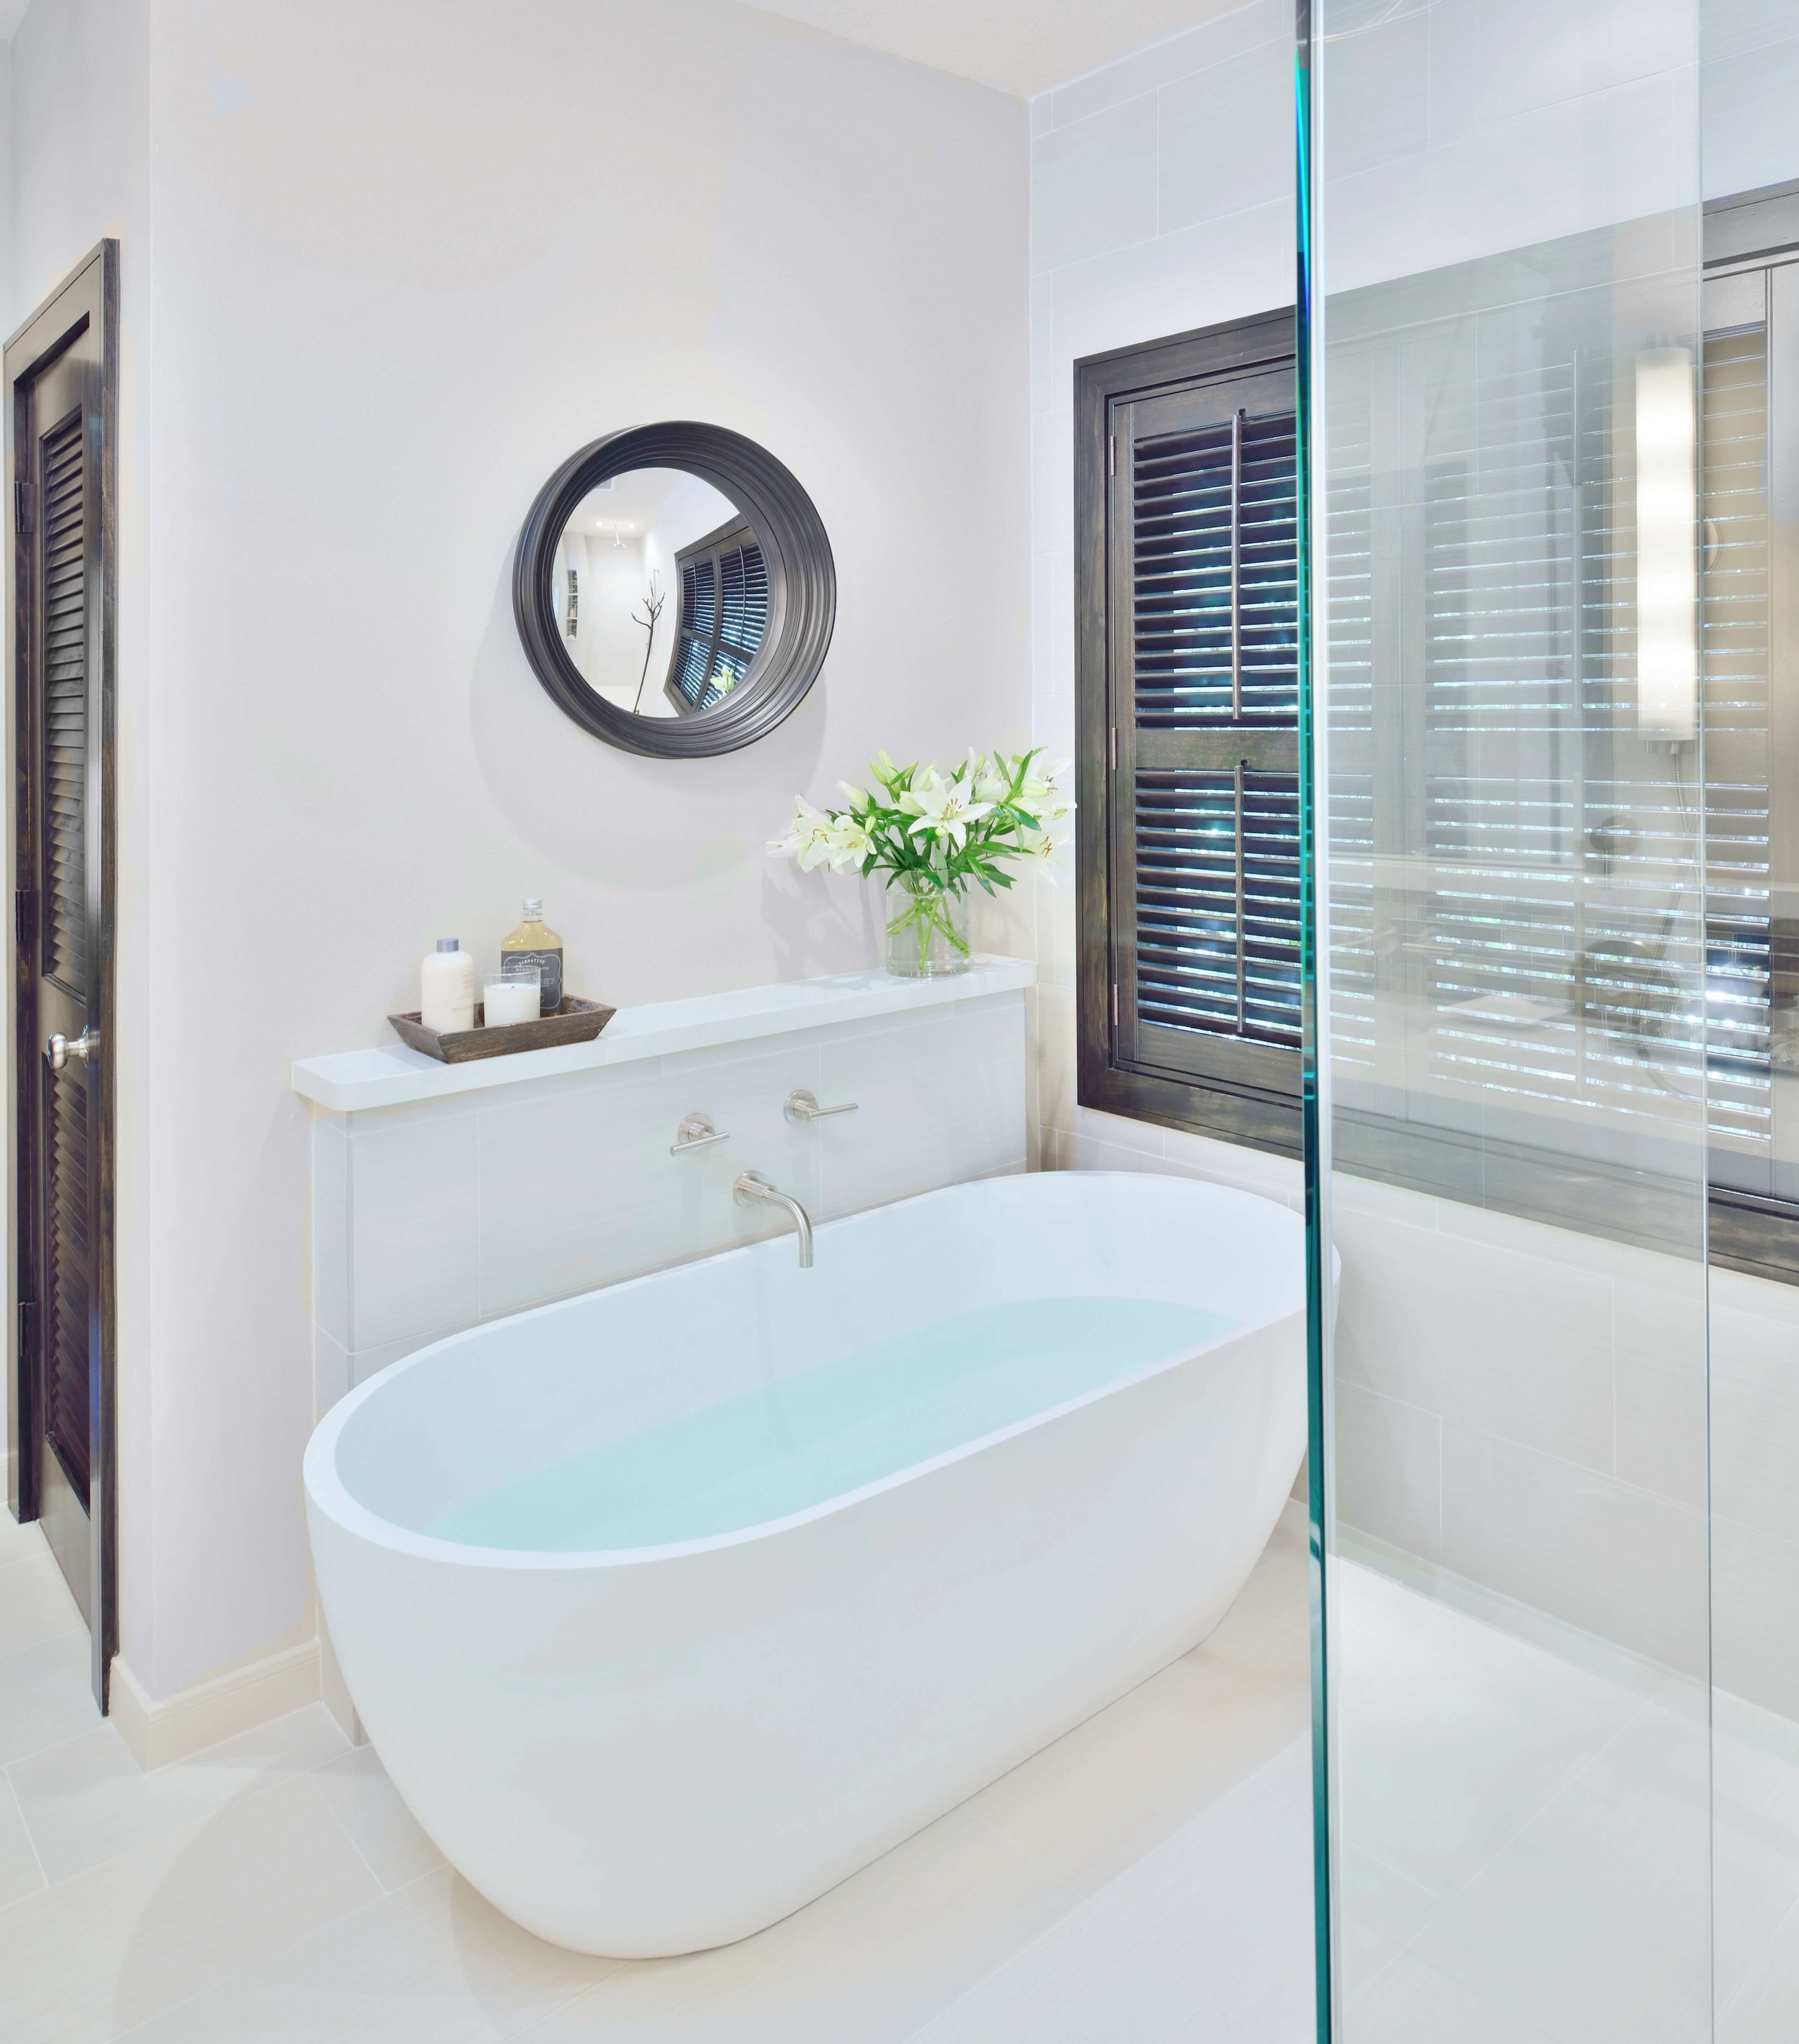 Bathroom Design Quick Tip Are Free Standing Tubs Still Popular Designed